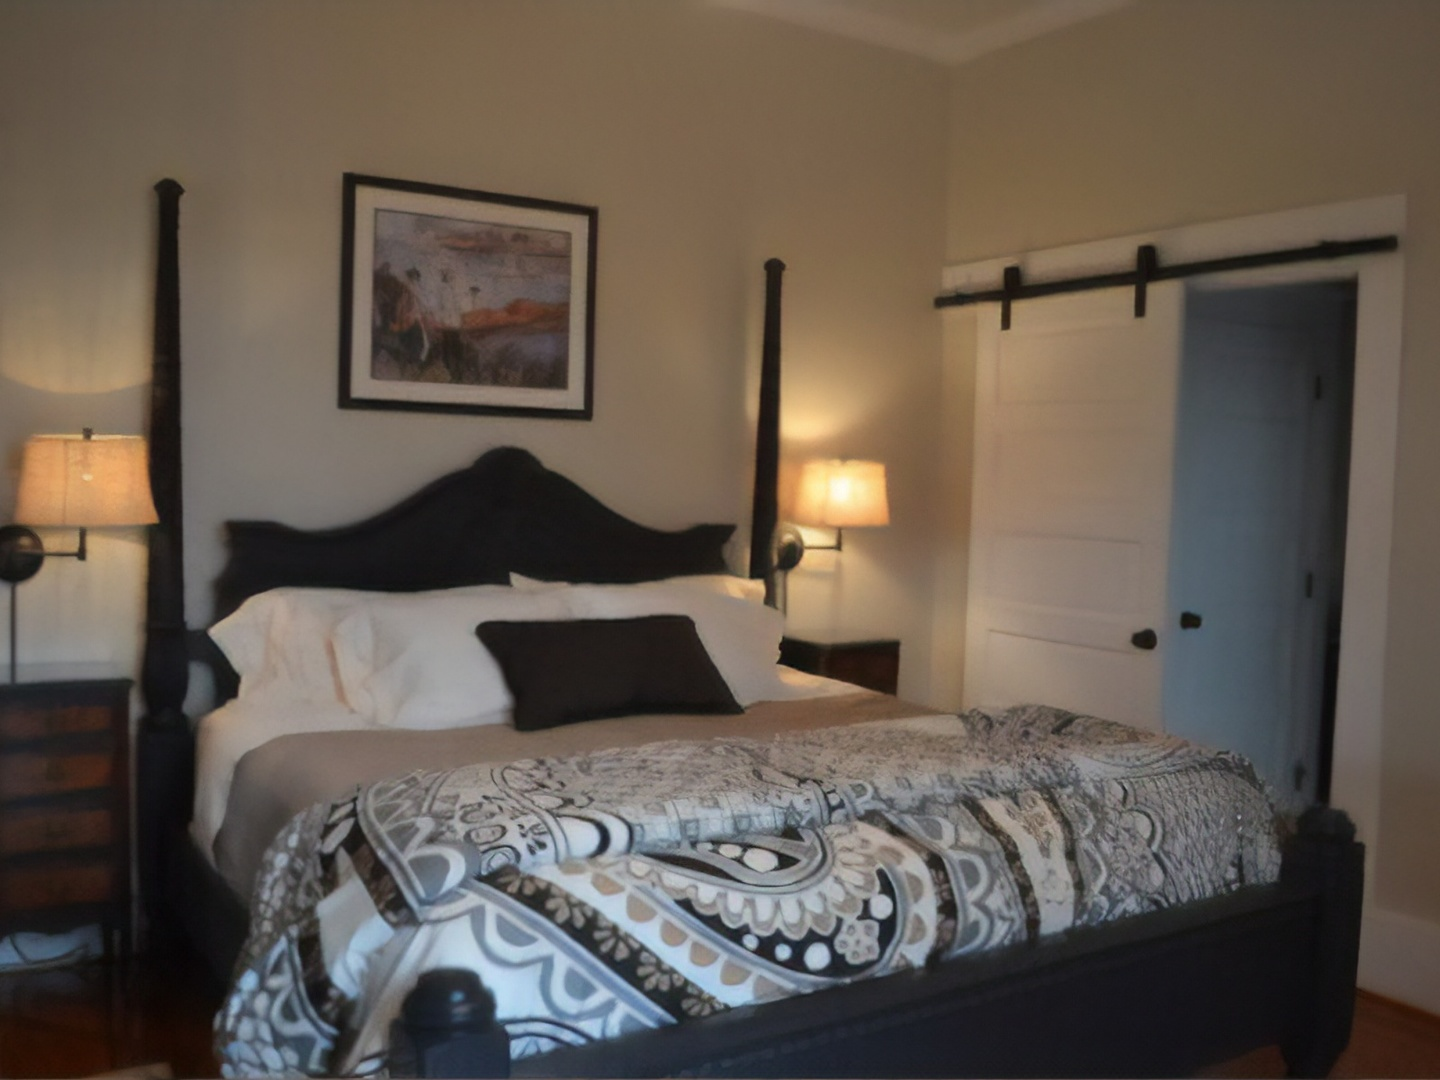 A double bed in a room at Inn at Blackberry Creek.